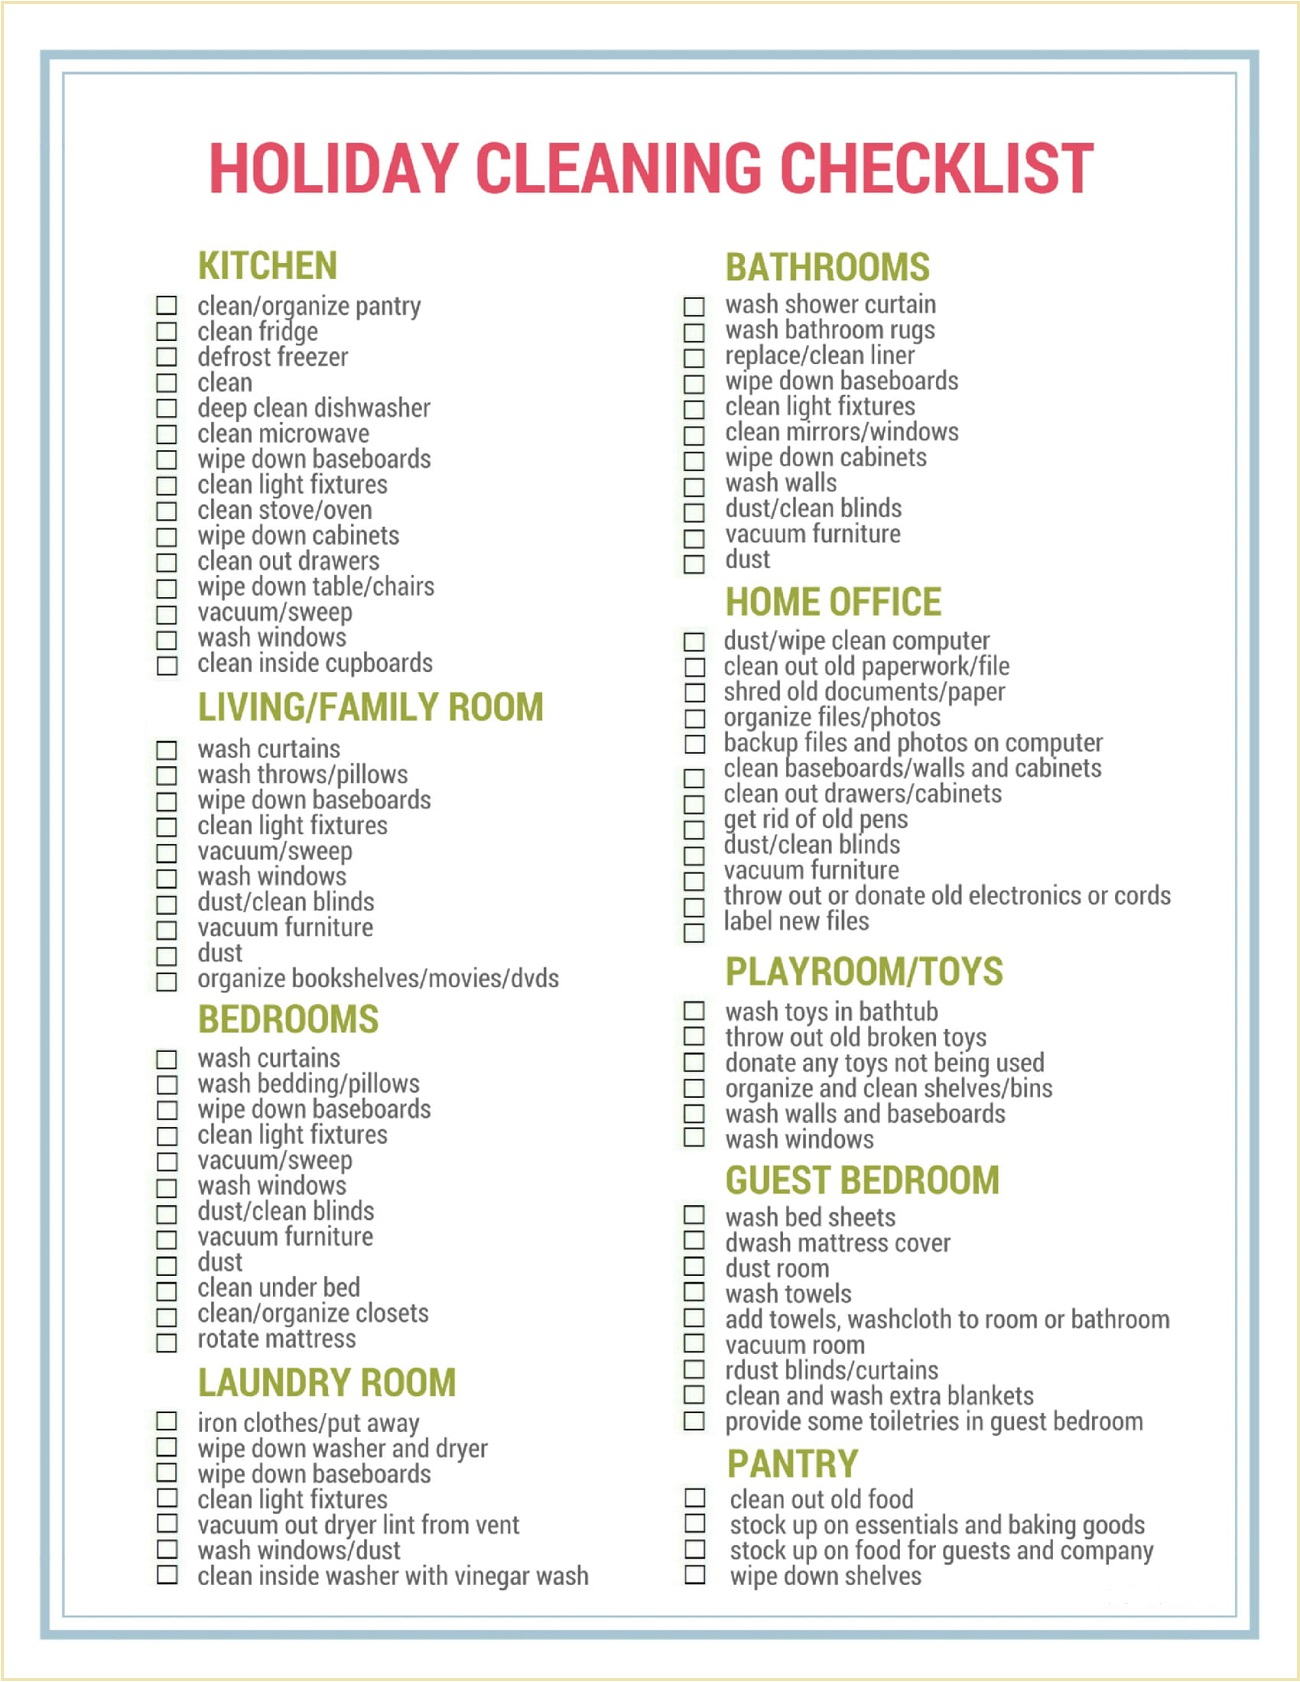 Sample Christmas Cleaning Checklist Template PDF